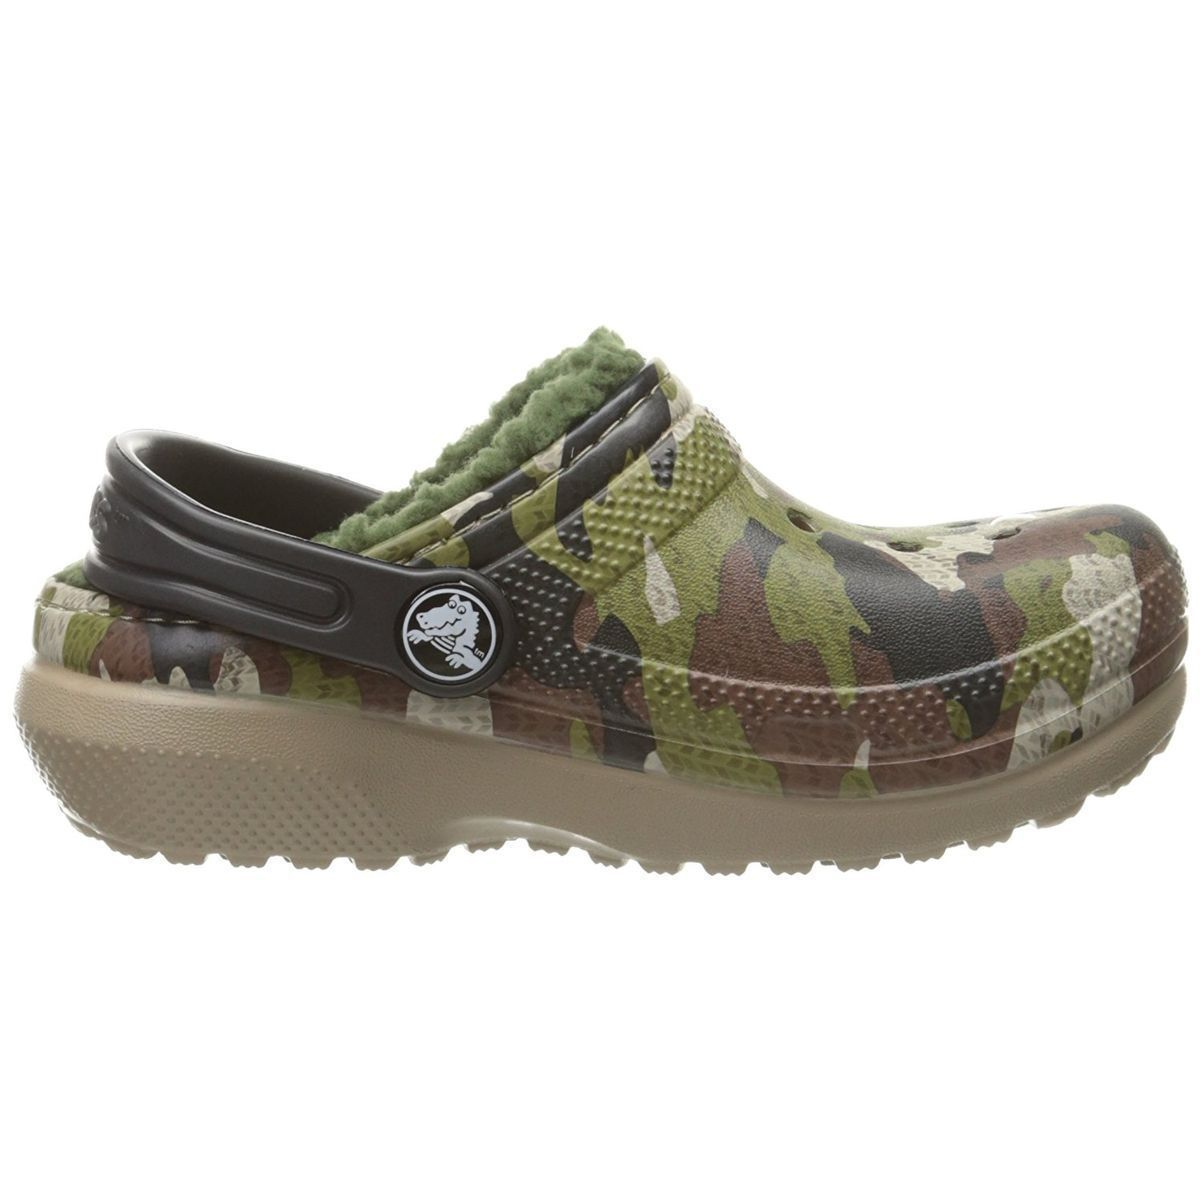 LICENCEB KID'S CLASSIC FUZZ LINED GRAPHIC CLOG:CAMOUFLAGE/CAOUTCHOUC/CAOUTCHOUC/CAOUTCHOUC/Camouflage